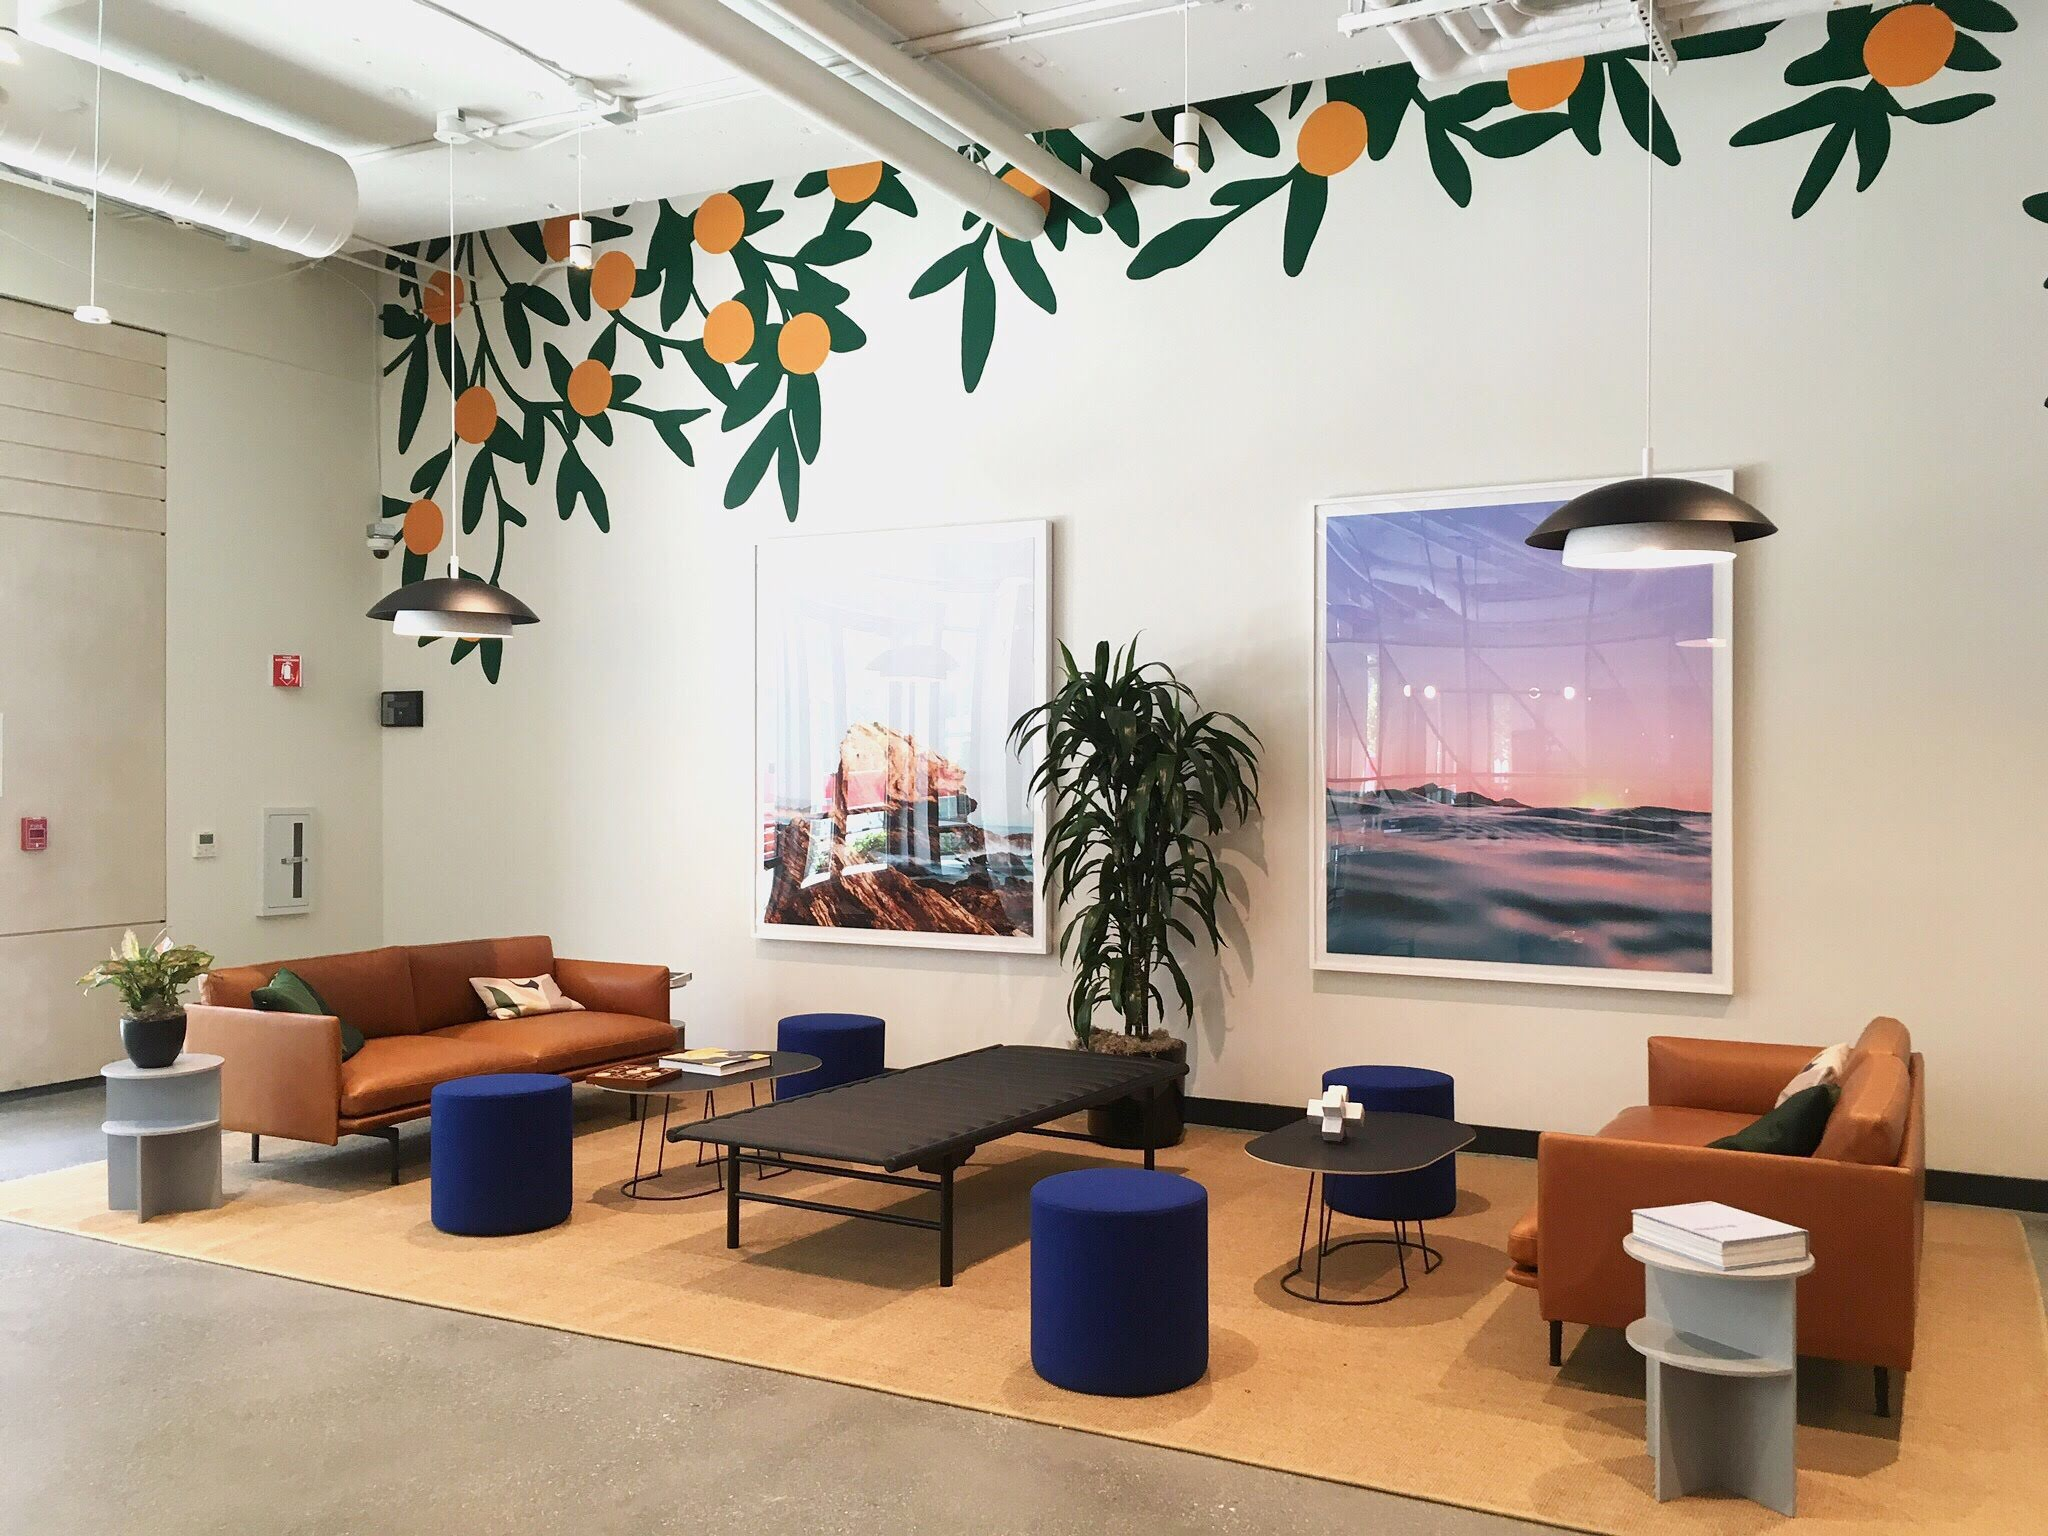 Office-commercial-mural-san-francisco-wework-oranges-wall-and-wall-mural-company.jpg